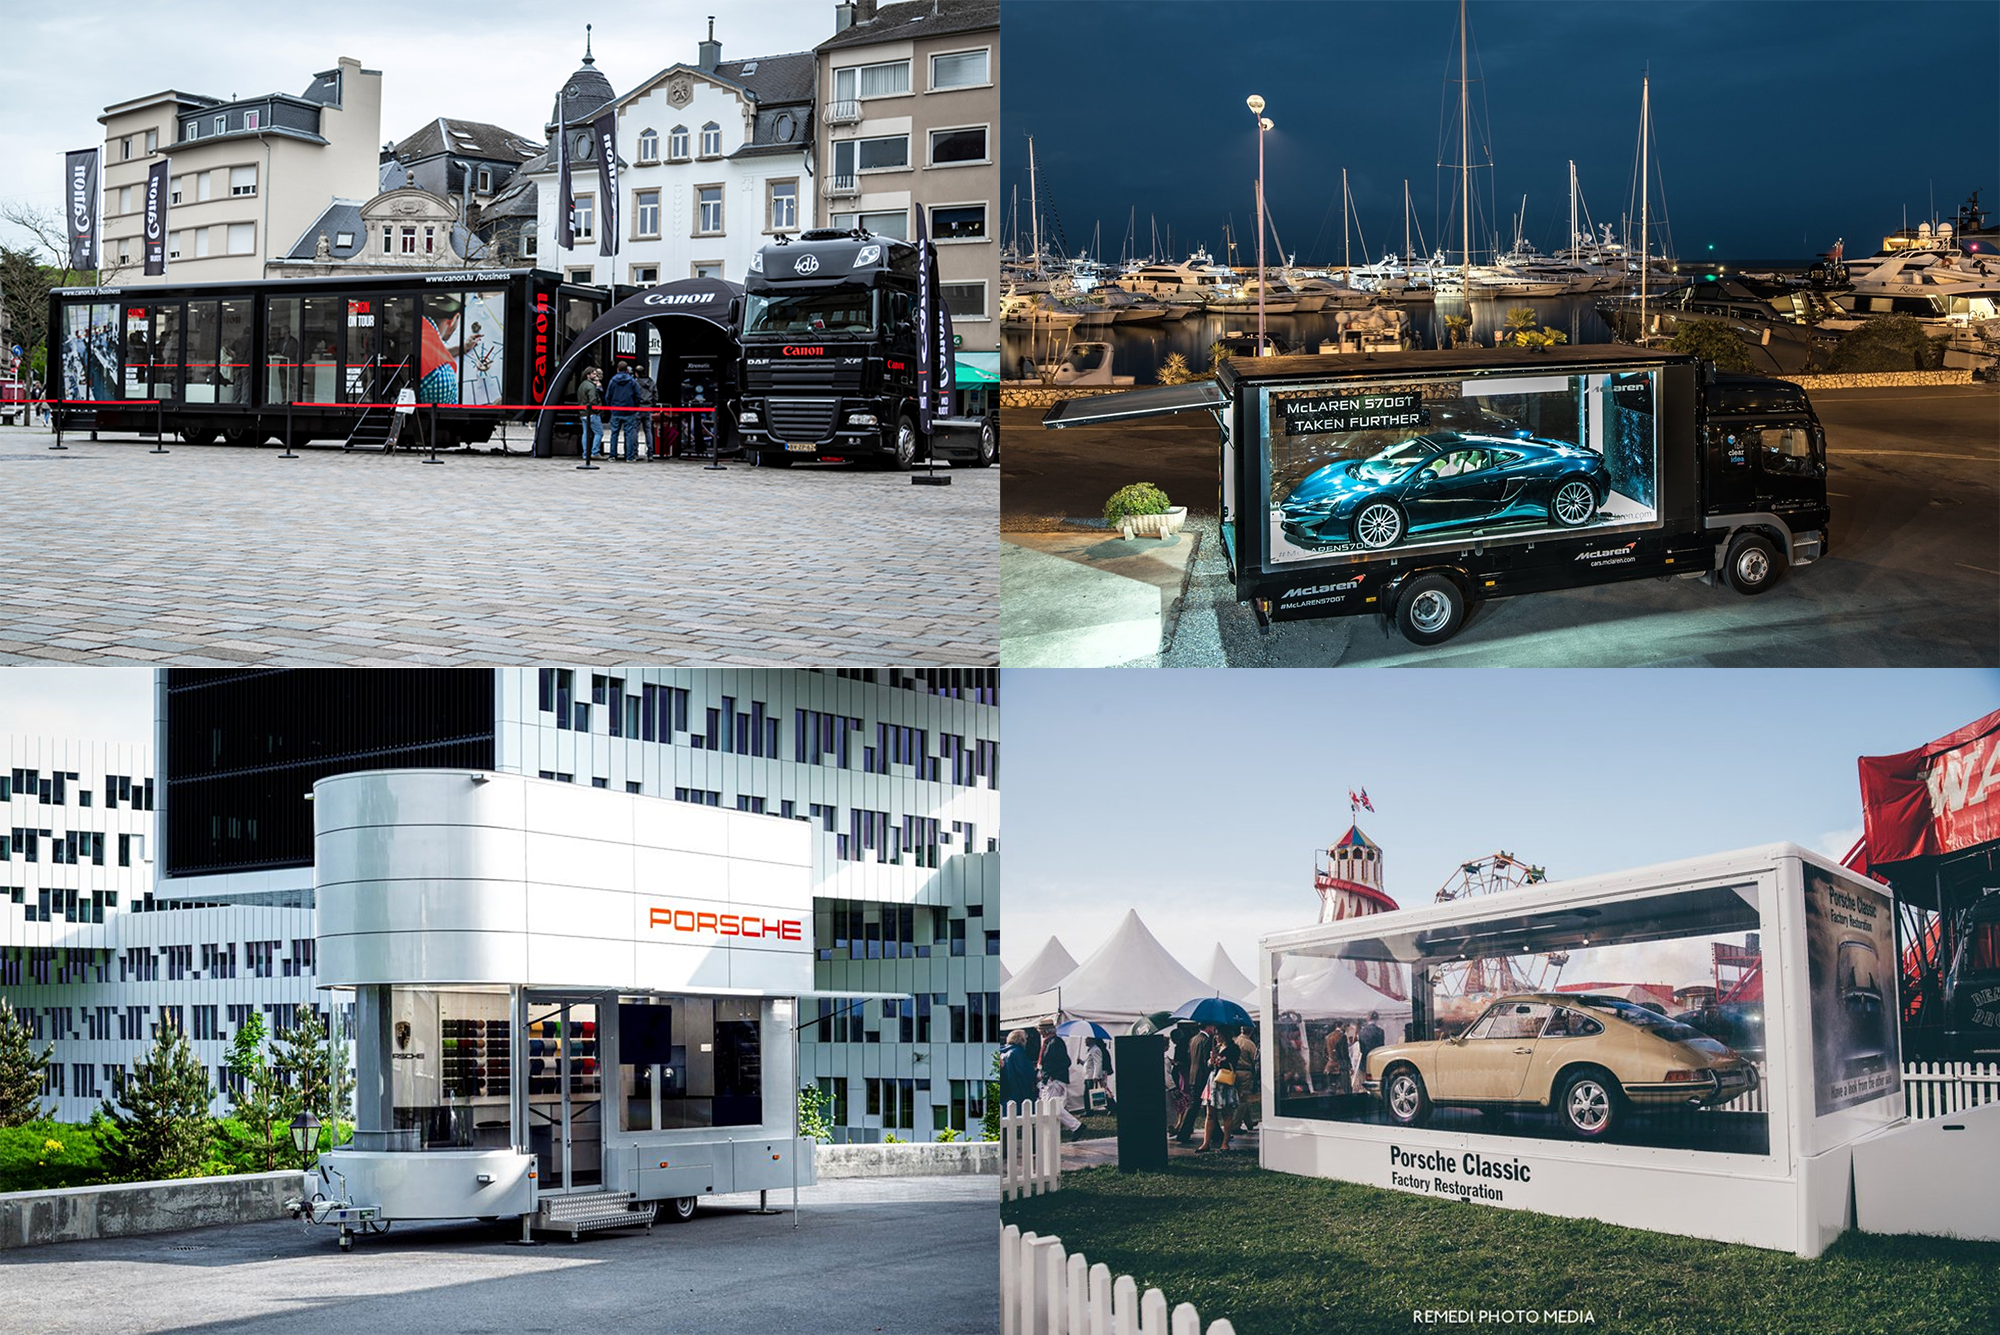 About The Clear Idea | Roadshow Exhibition Trailers & Mobile Marketing Pop-up Shops